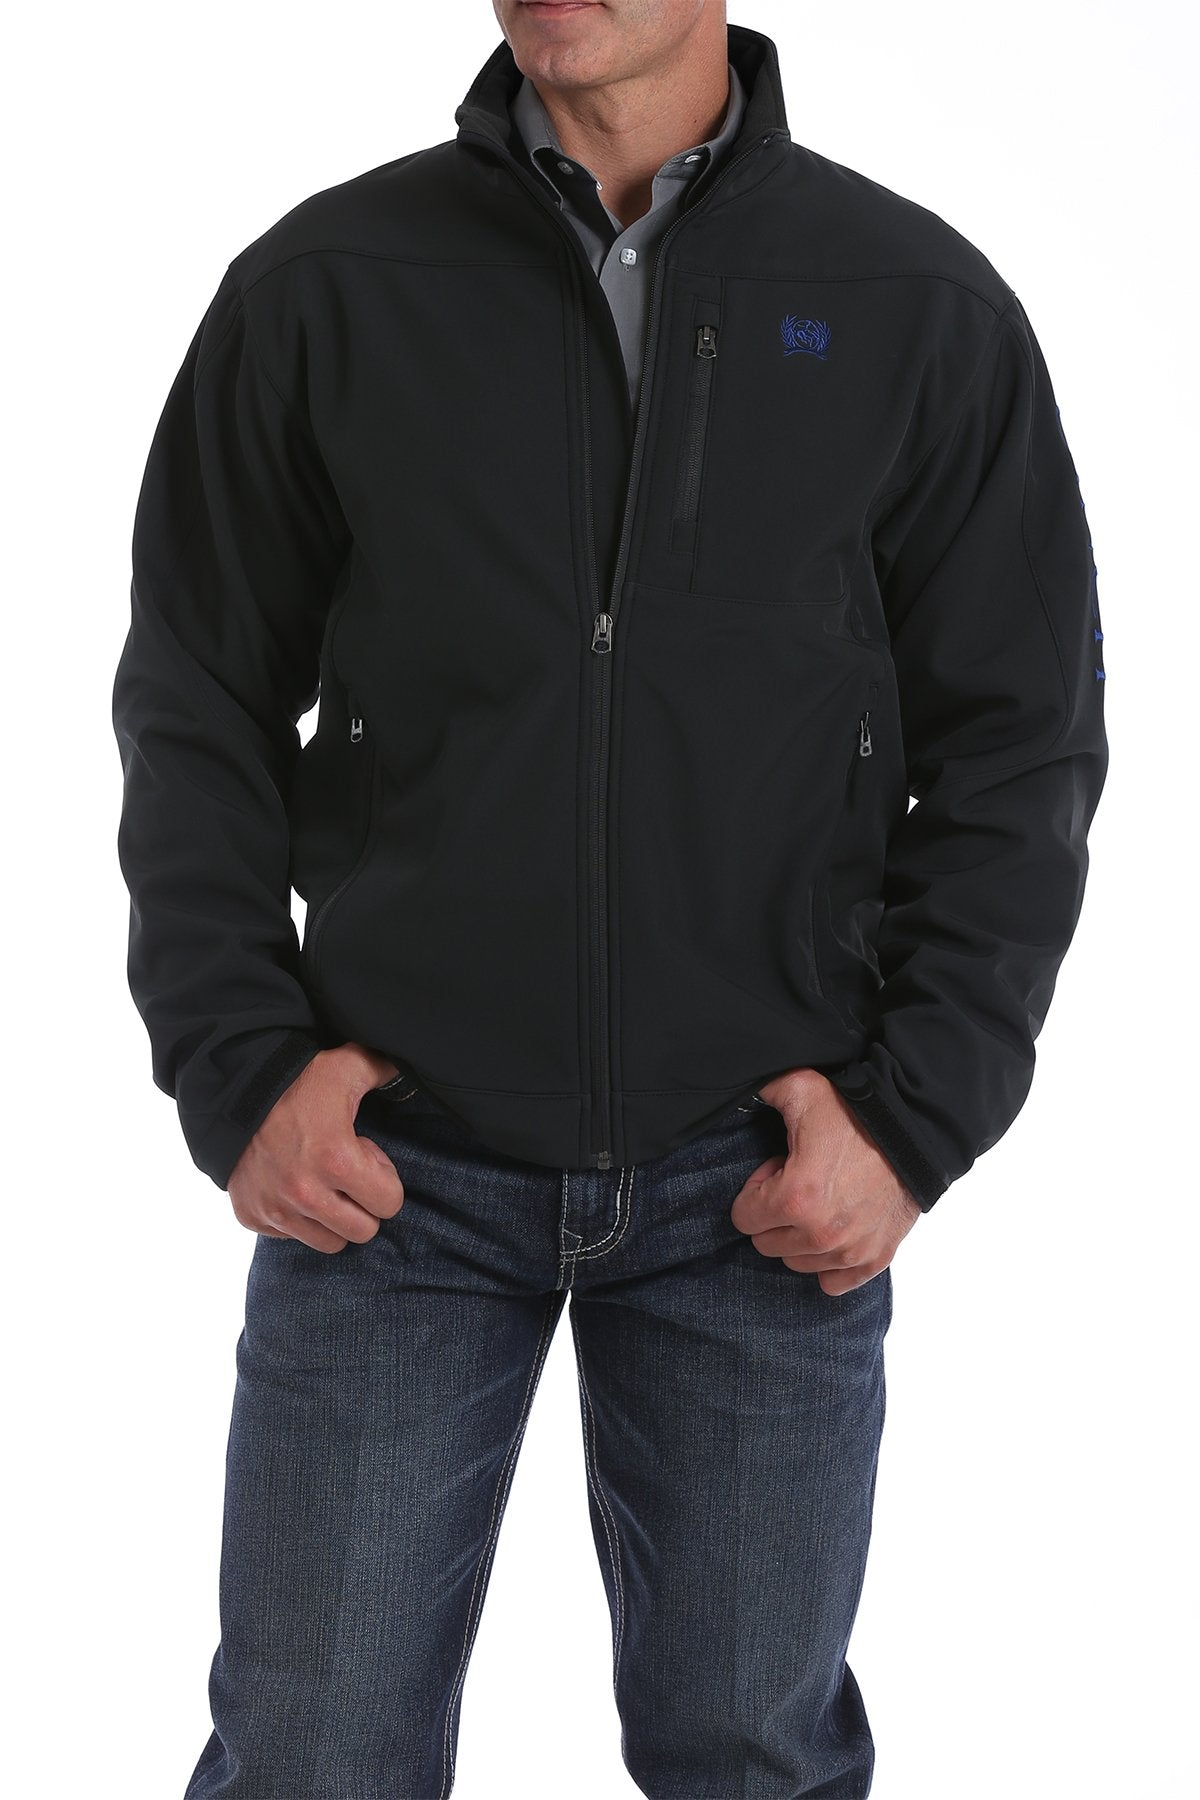 Cinch Black and Blue Bonded Men's Jacket